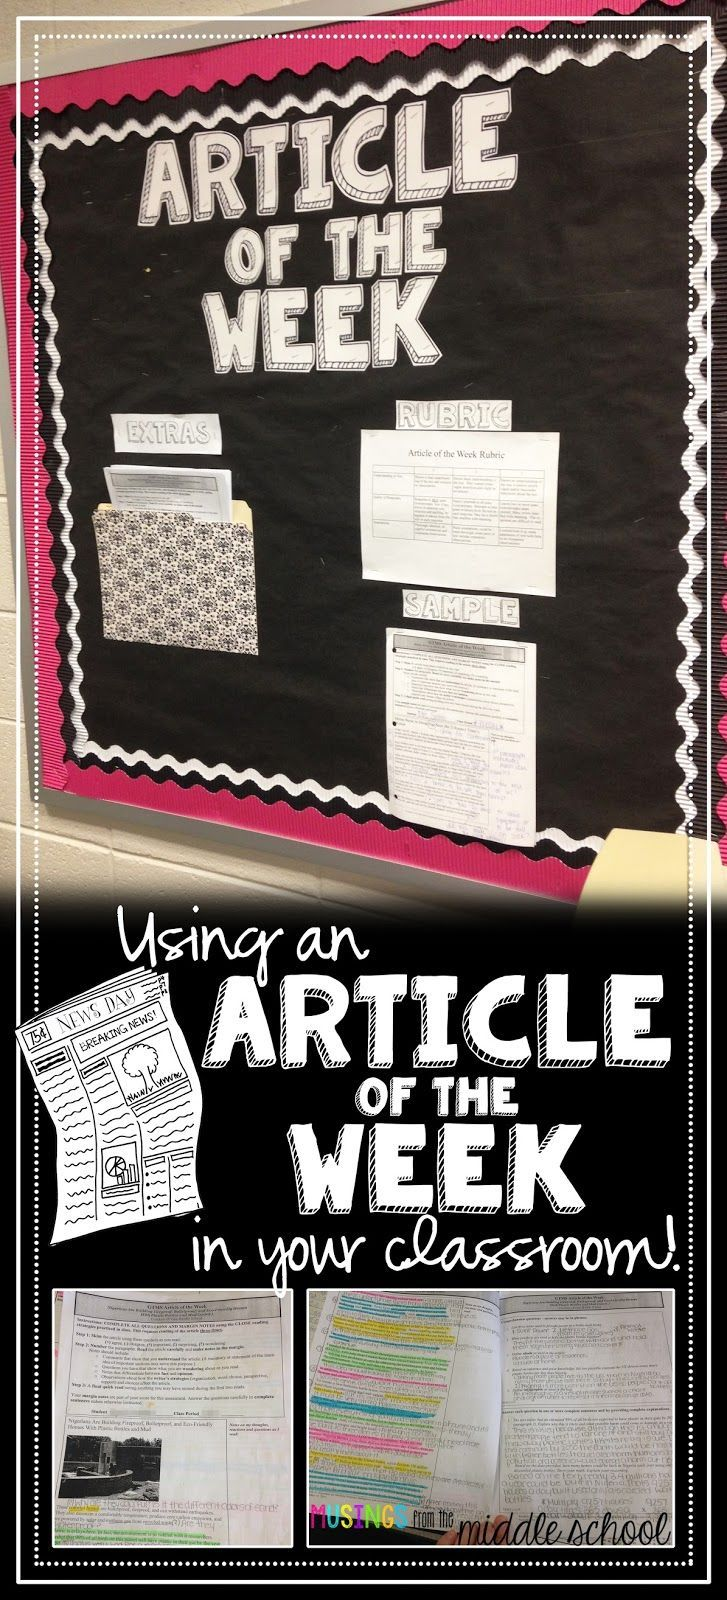 Musings from the Middle School: Article of the Week                                                                                                                                                      More